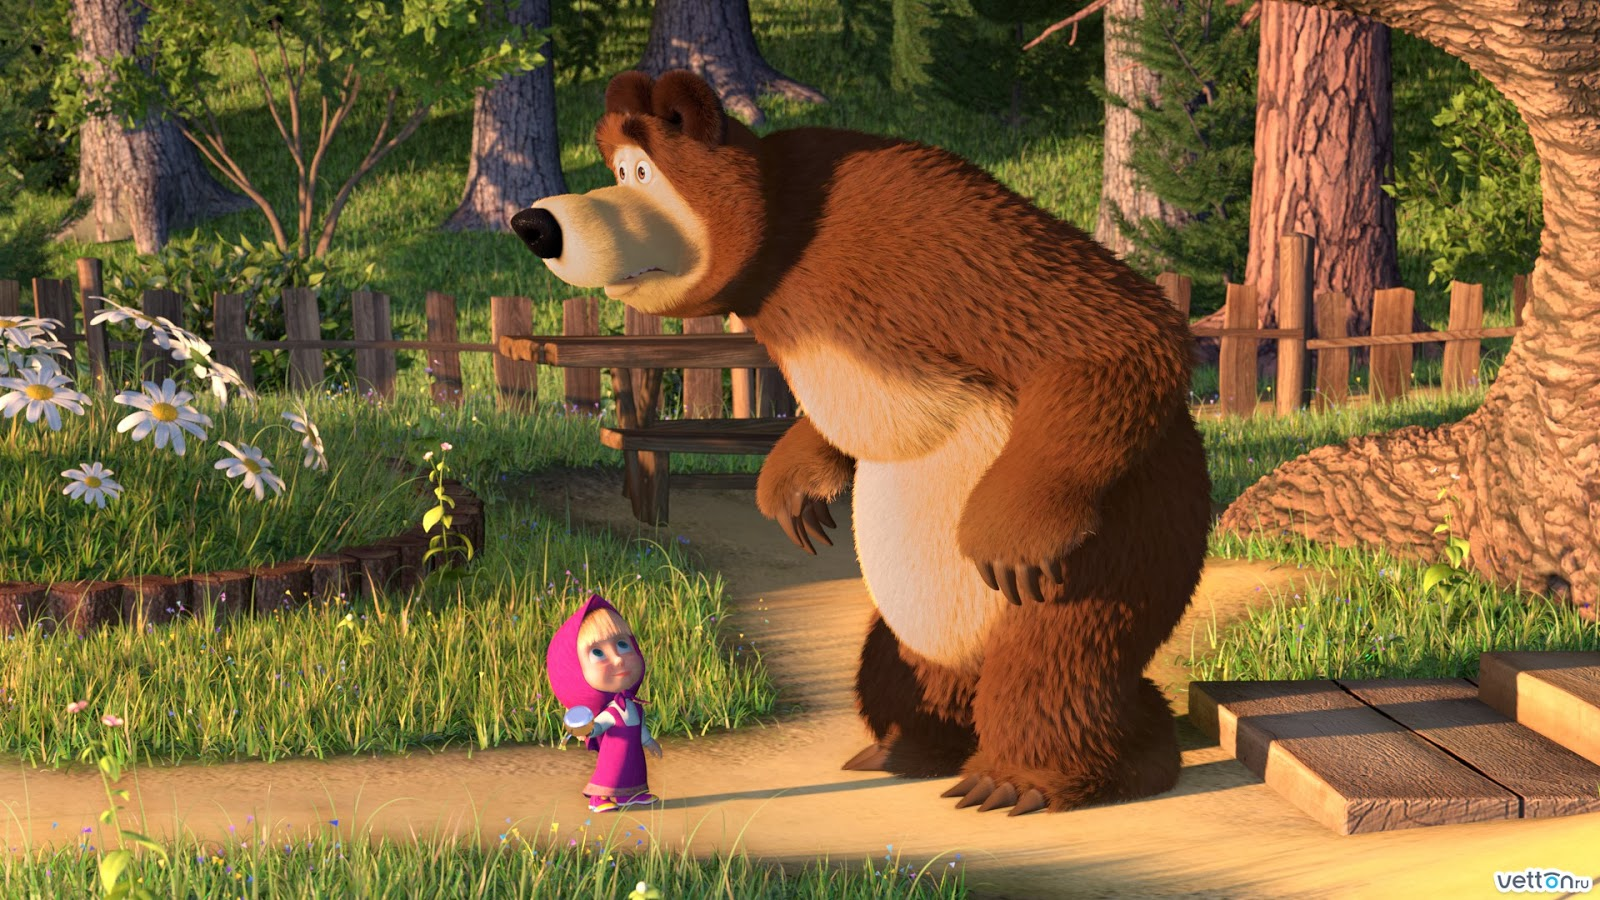 Marsha and the bear 3D animation kids series film wallpaper